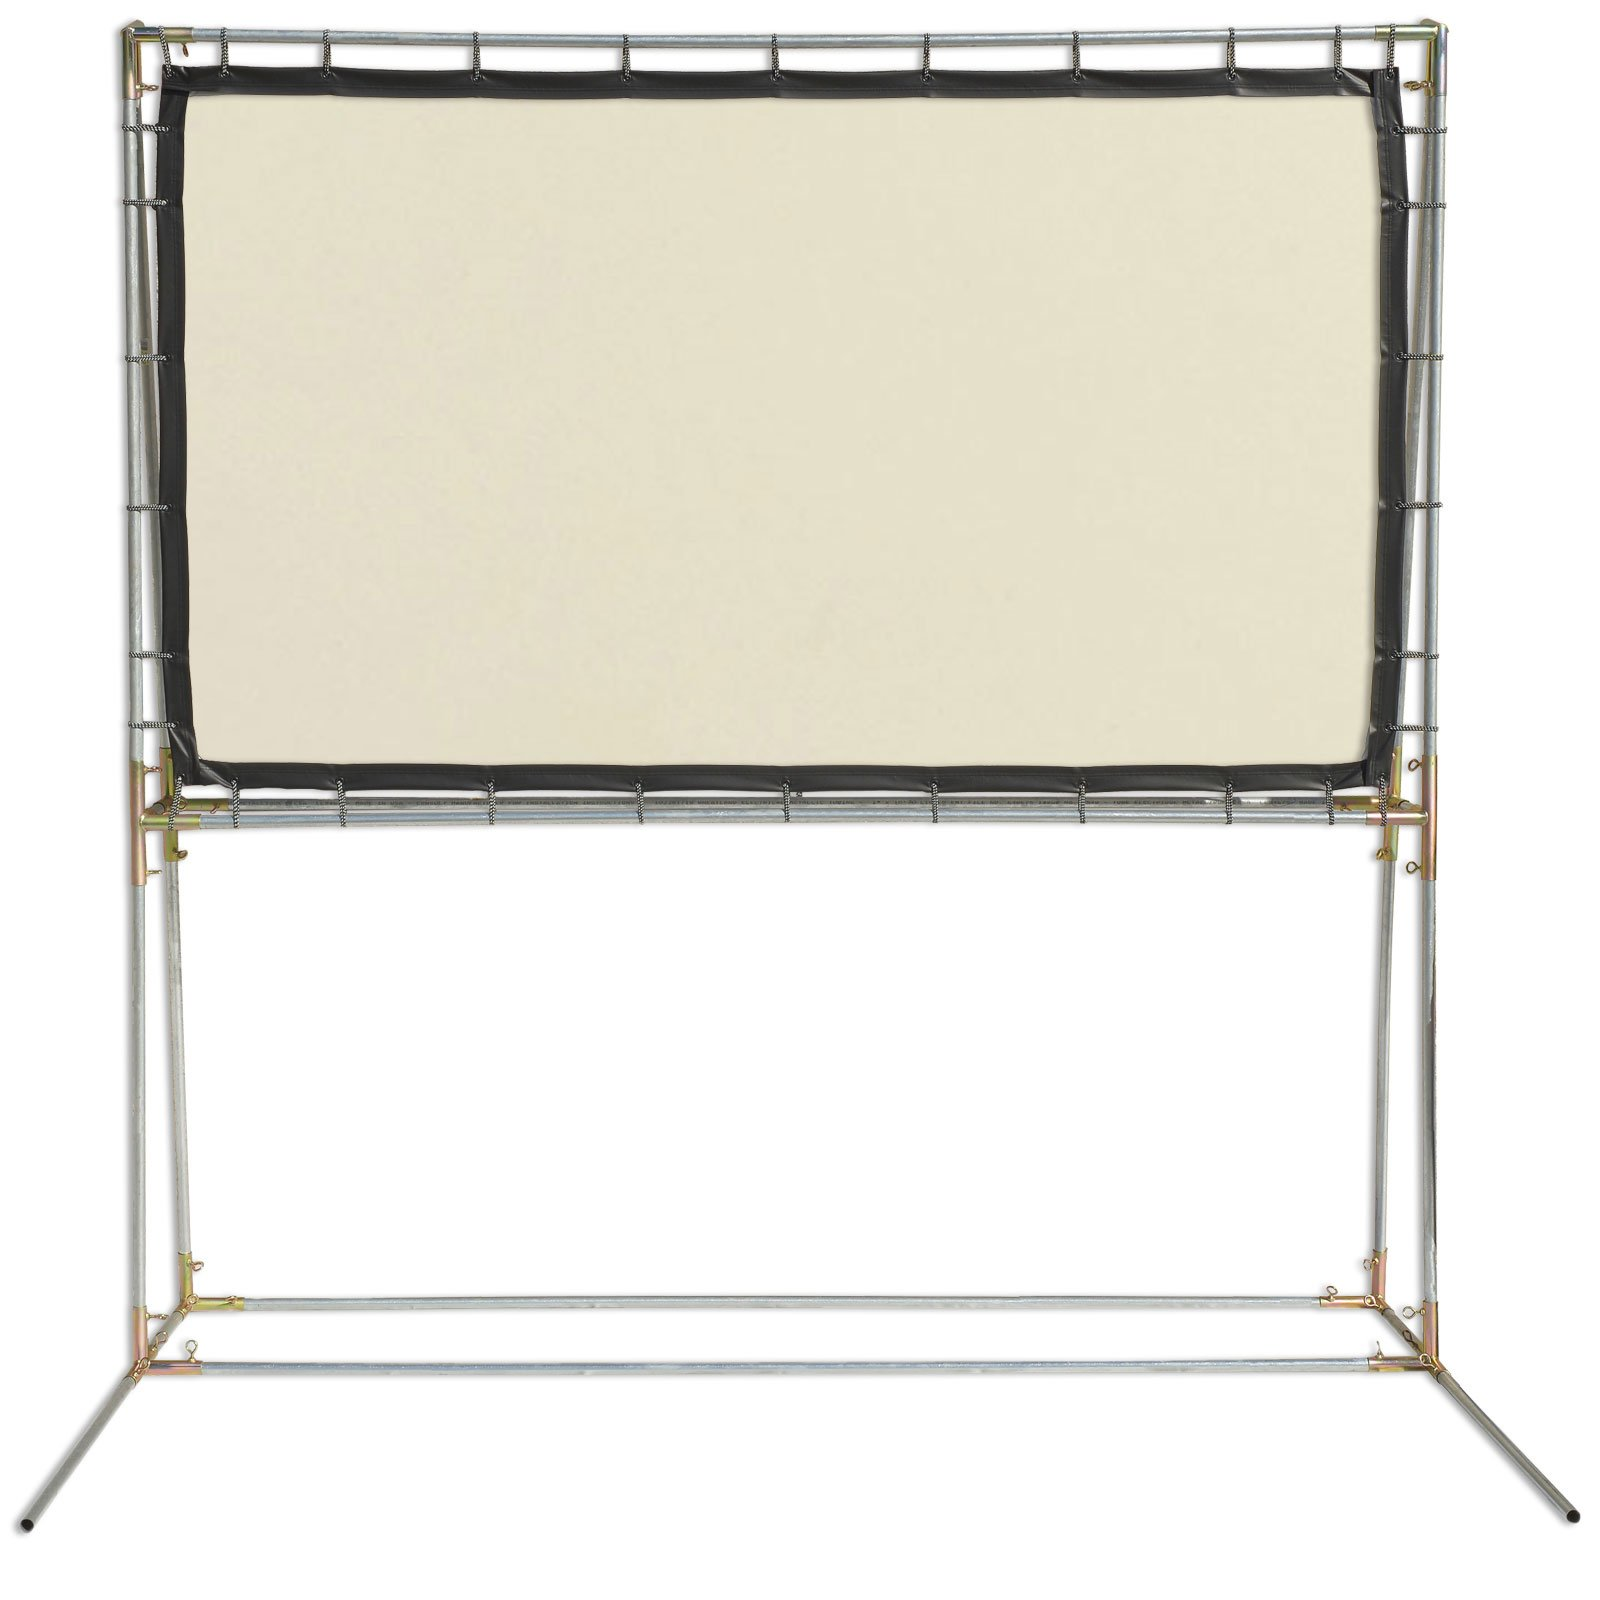 Carl's (4:3) 6.75x9 Ft, White Rear Projection FreeStanding Screen Kit for Virtual Halloween Windows, Halloween Projection Videos